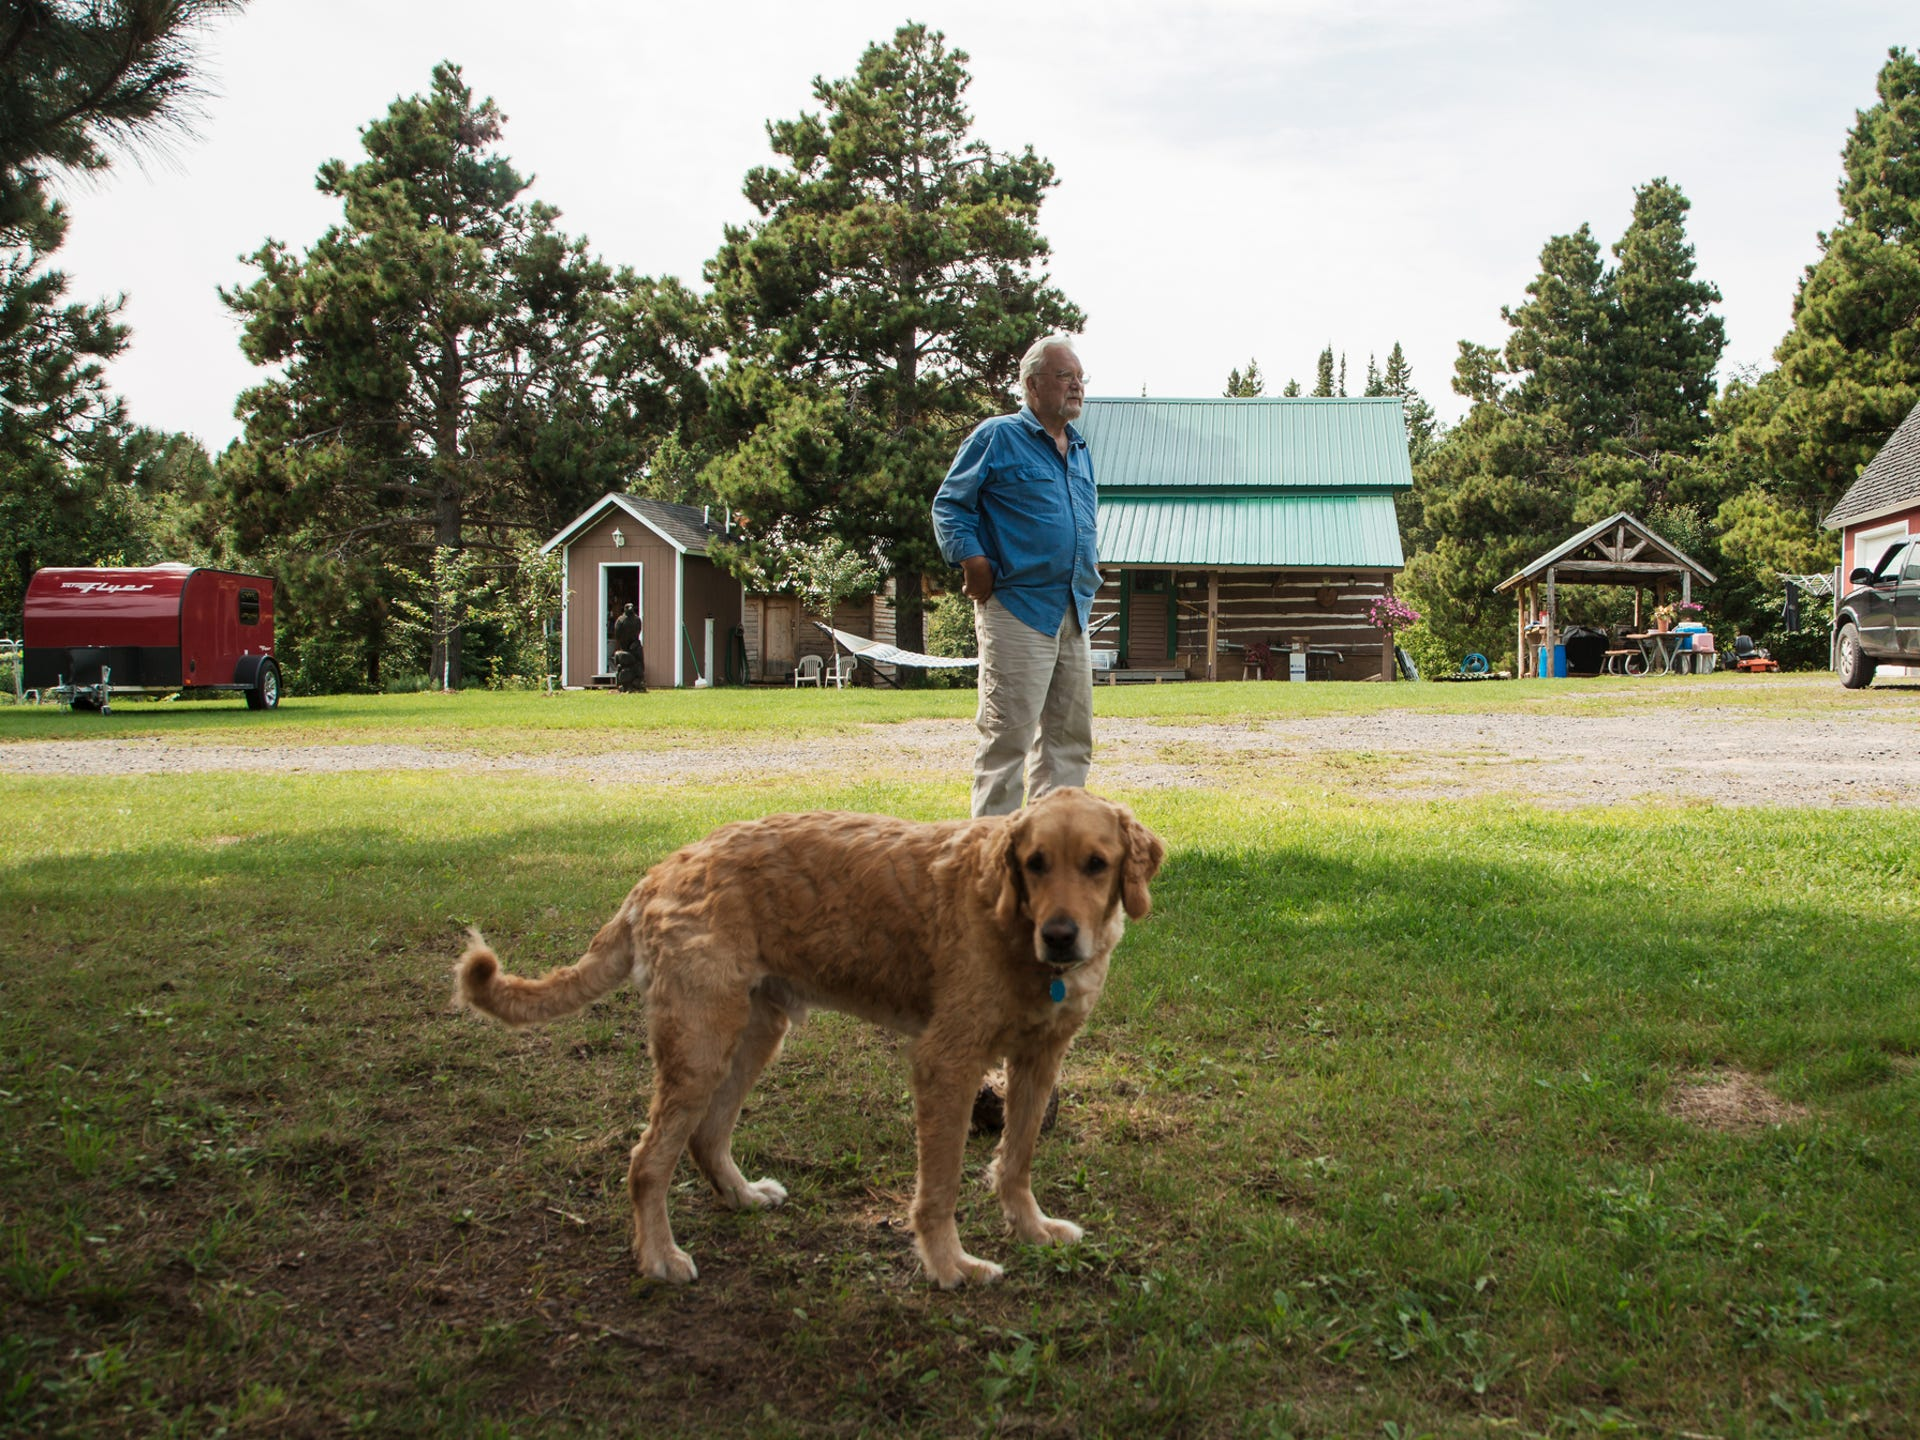 Jim Vivian, 74, stands with his dog in front of his